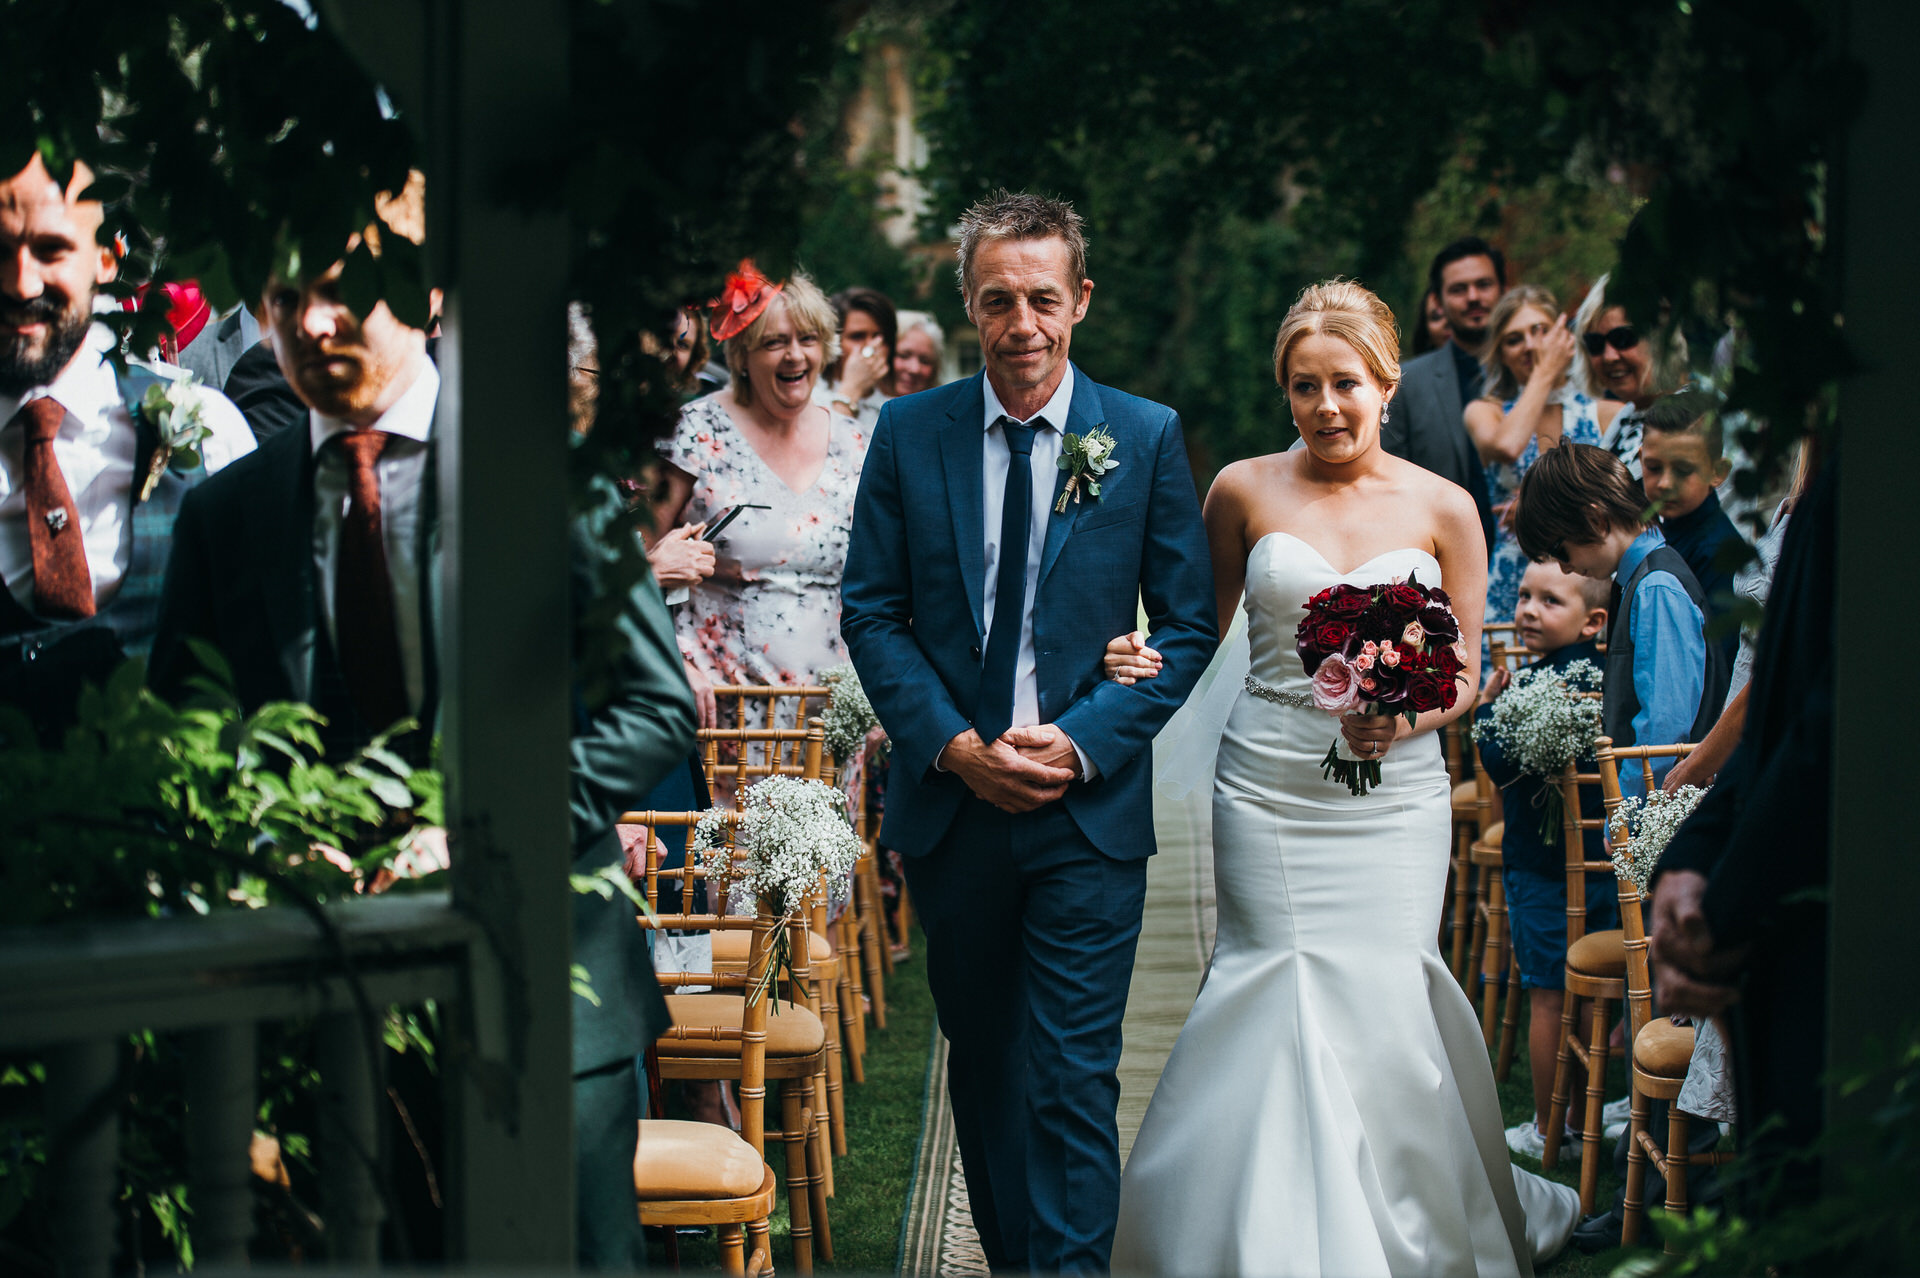 Maunsel house wedding photography 20 outdoor ceremony